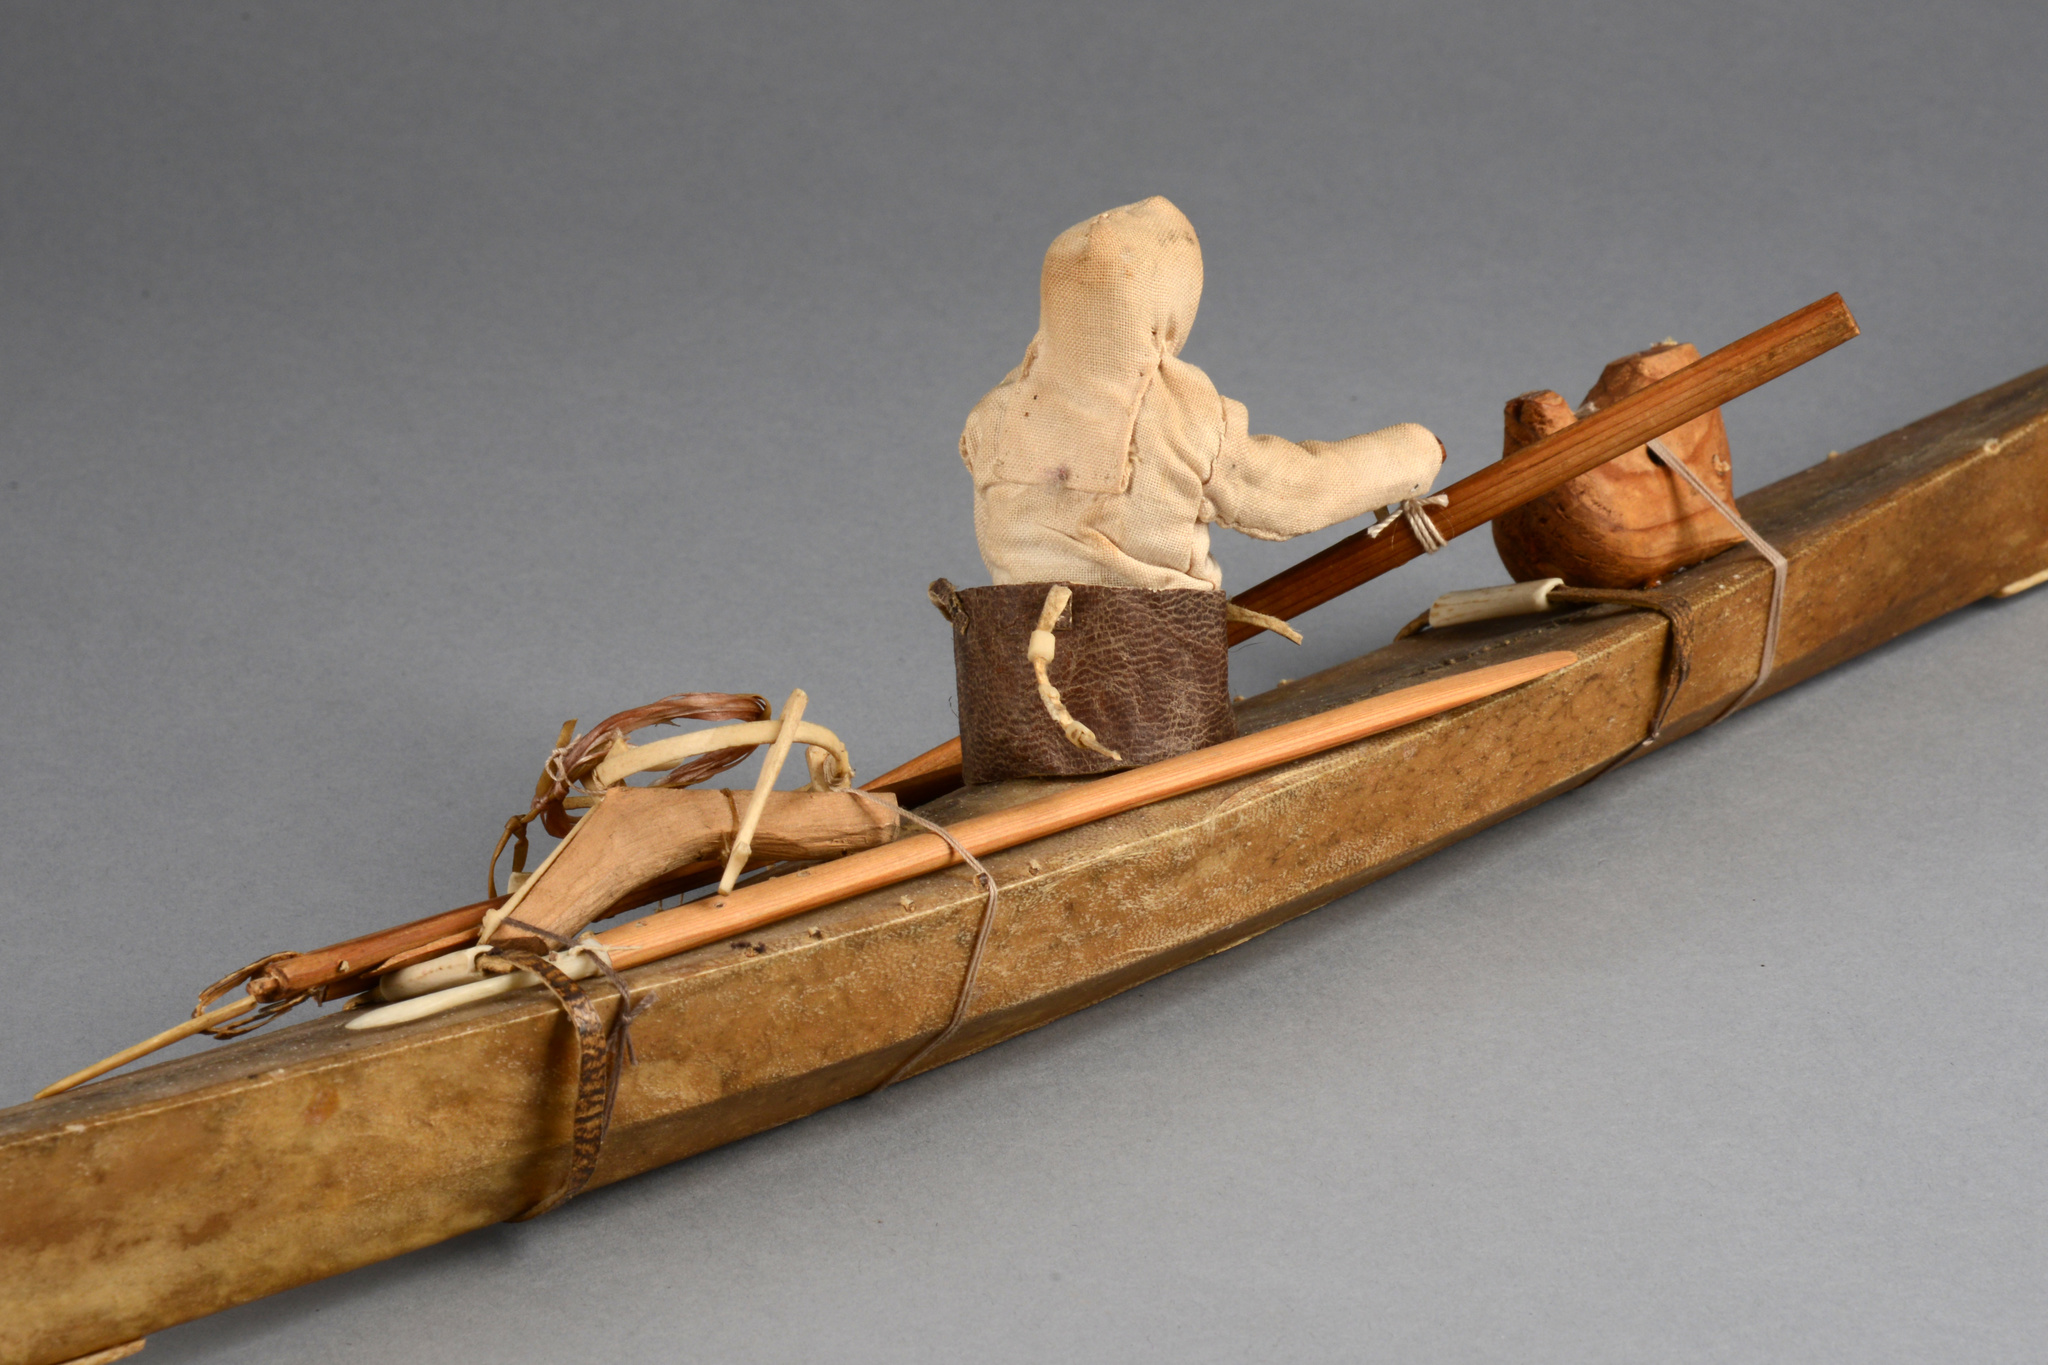 Model of Inuit kajak